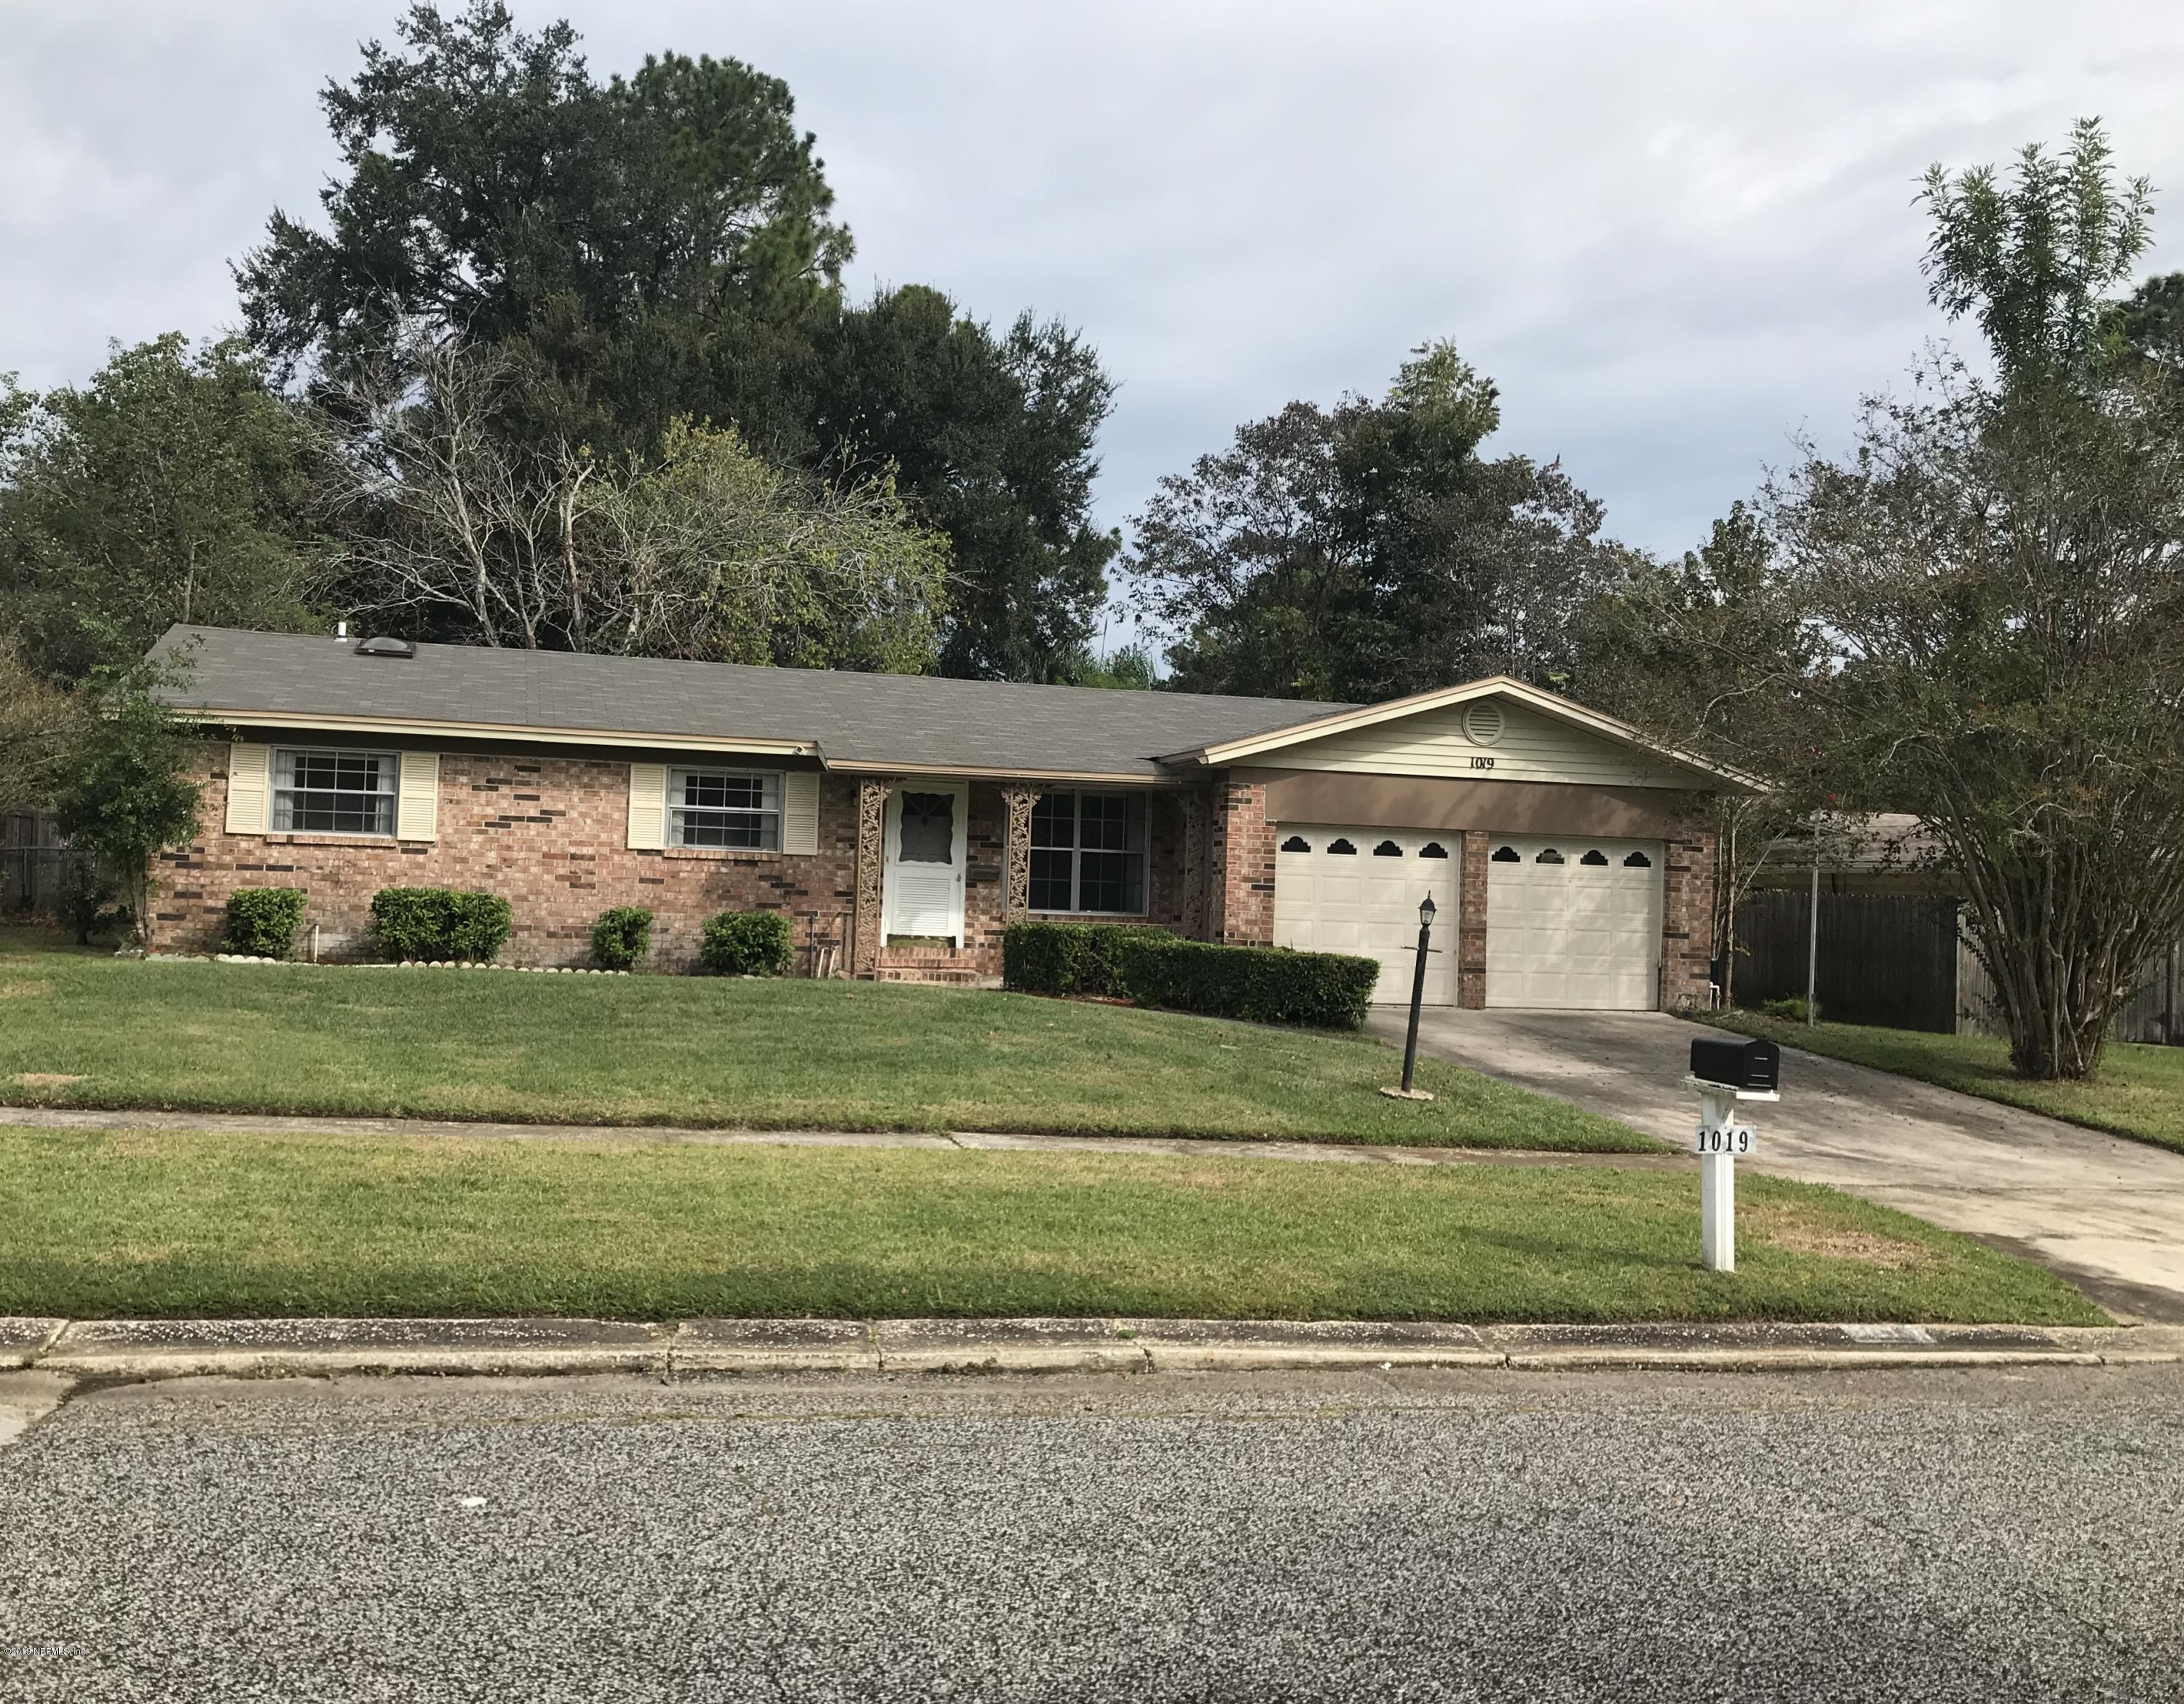 1019 GROVE PARK, ORANGE PARK, FLORIDA 32073, 3 Bedrooms Bedrooms, ,2 BathroomsBathrooms,Residential - single family,For sale,GROVE PARK,1020762